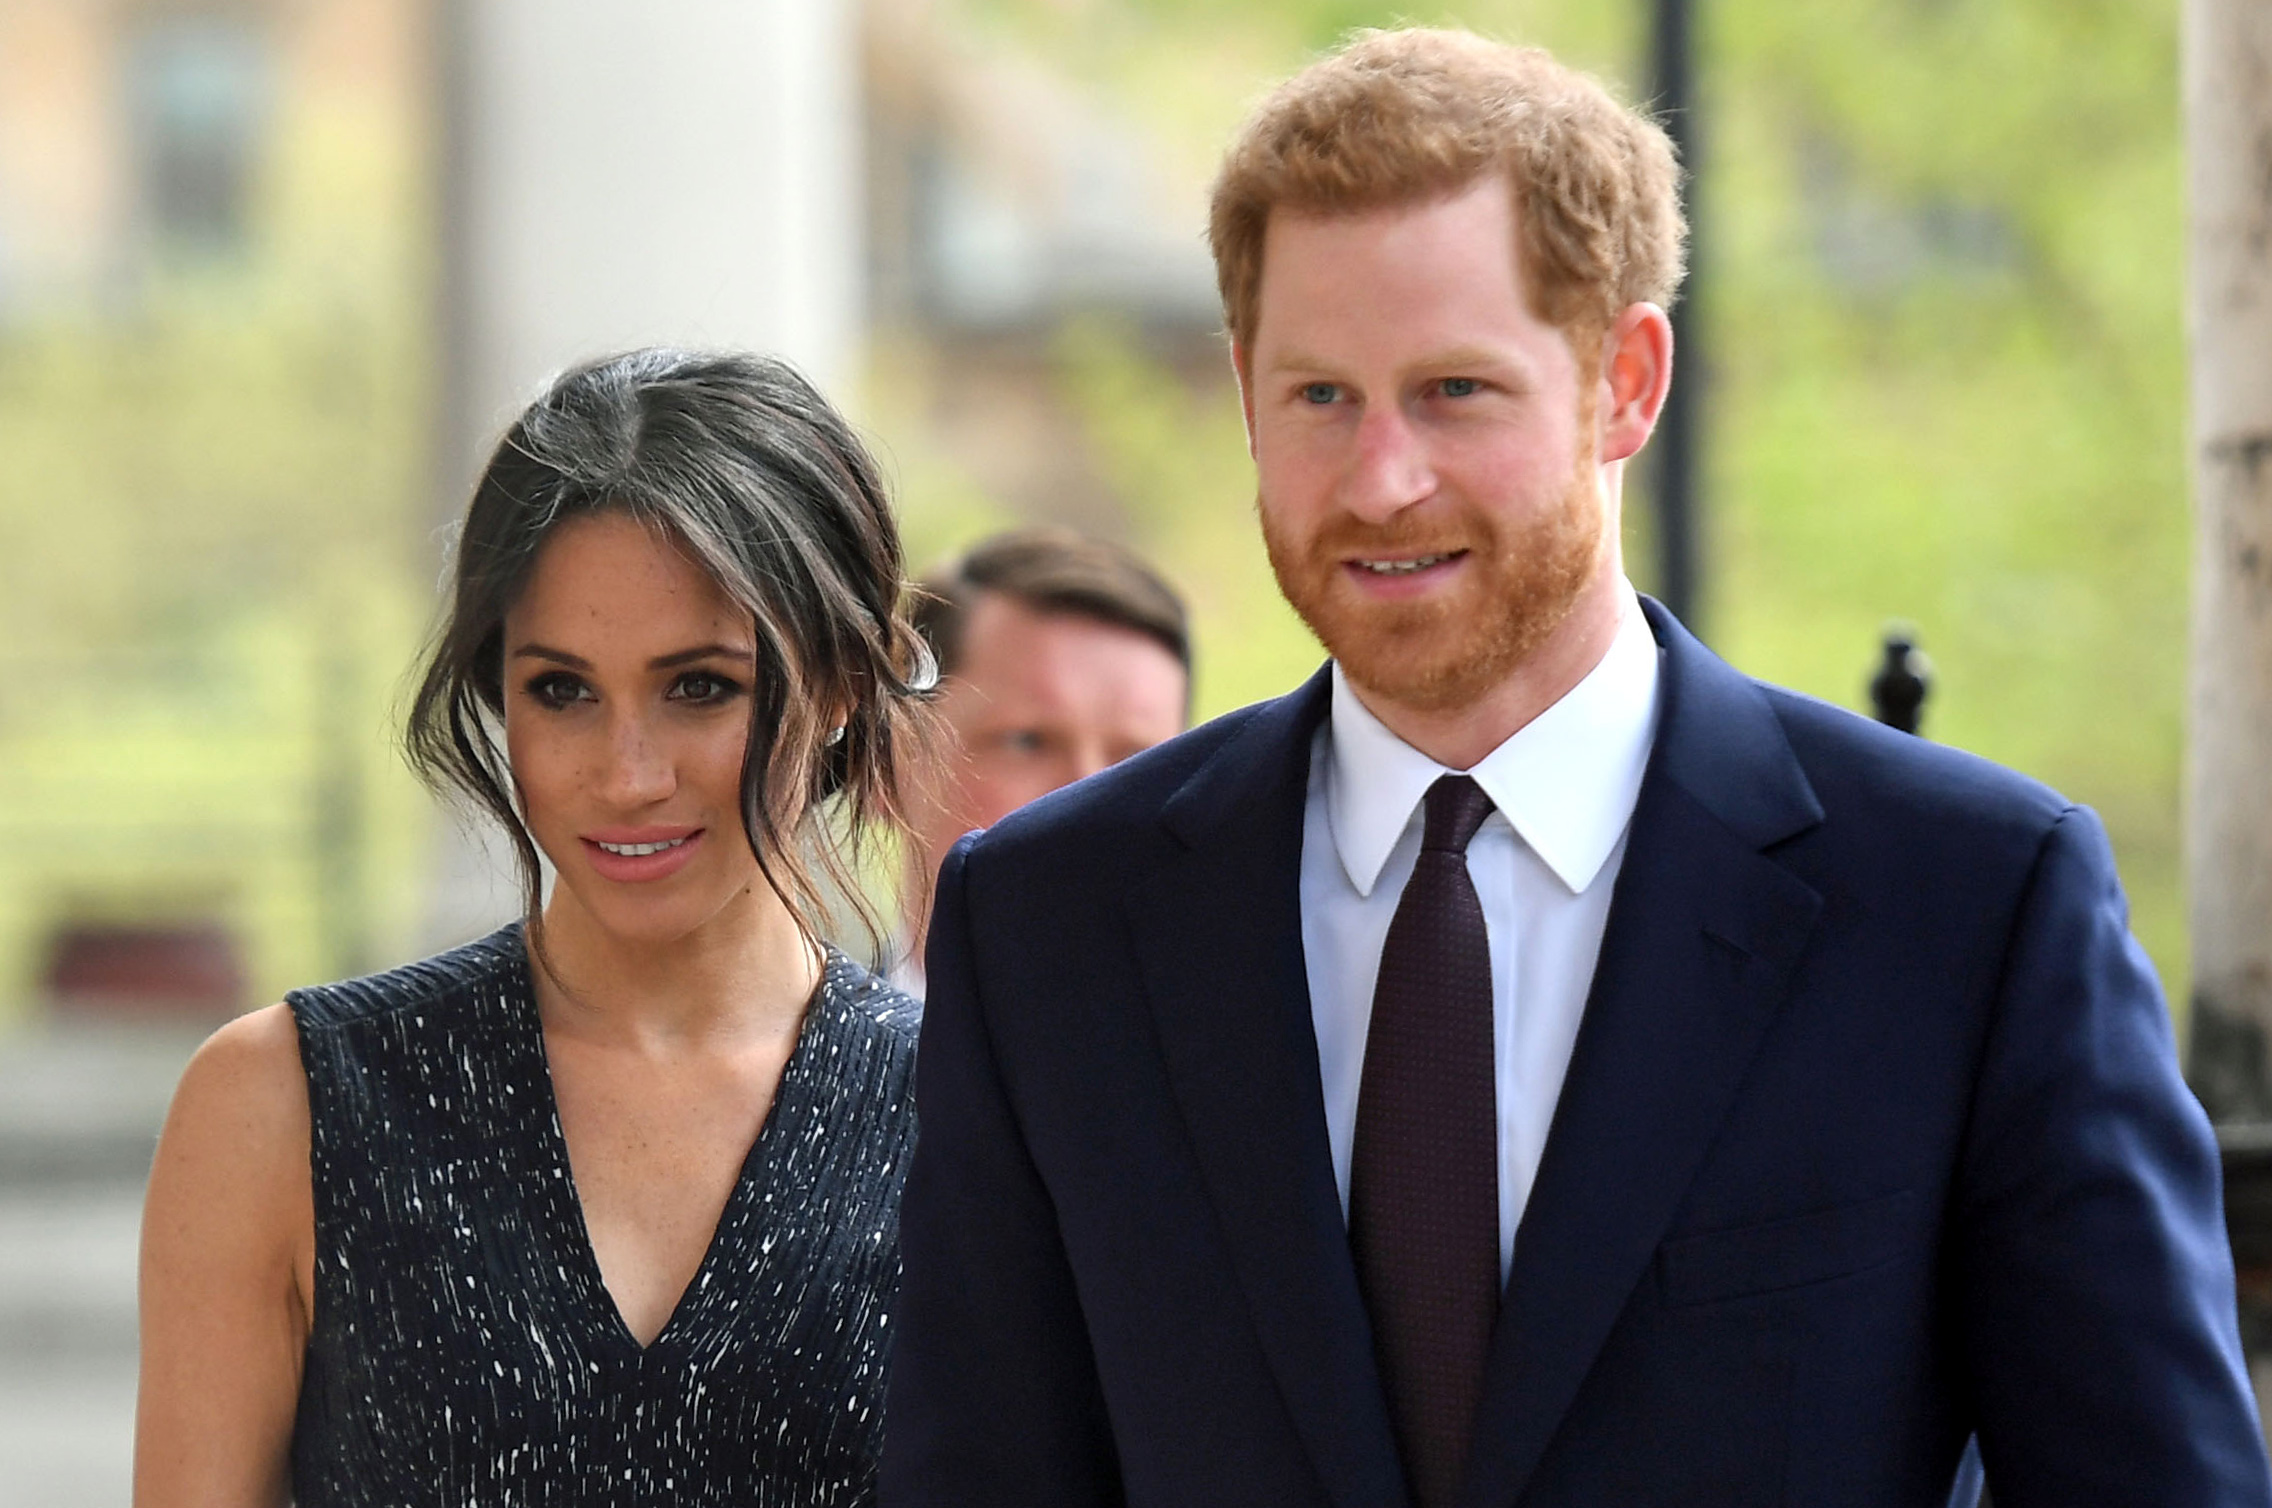 Prince Harry and Meghan Markle's team have publicly apologised for their Instagram blunder